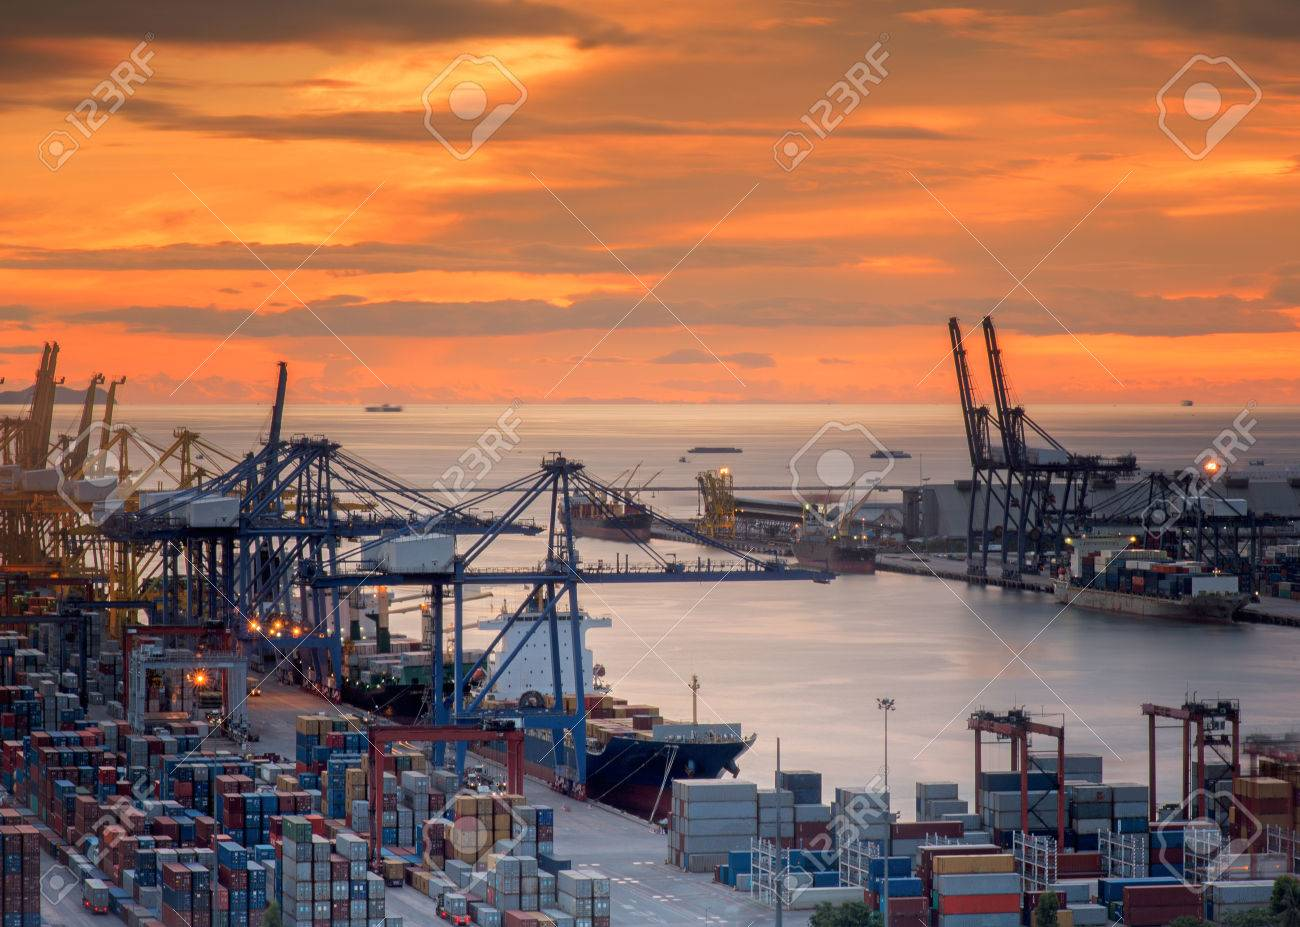 Landscape from bird view of Cargo ships entering one of the busiest ports Standard-Bild - 31342240